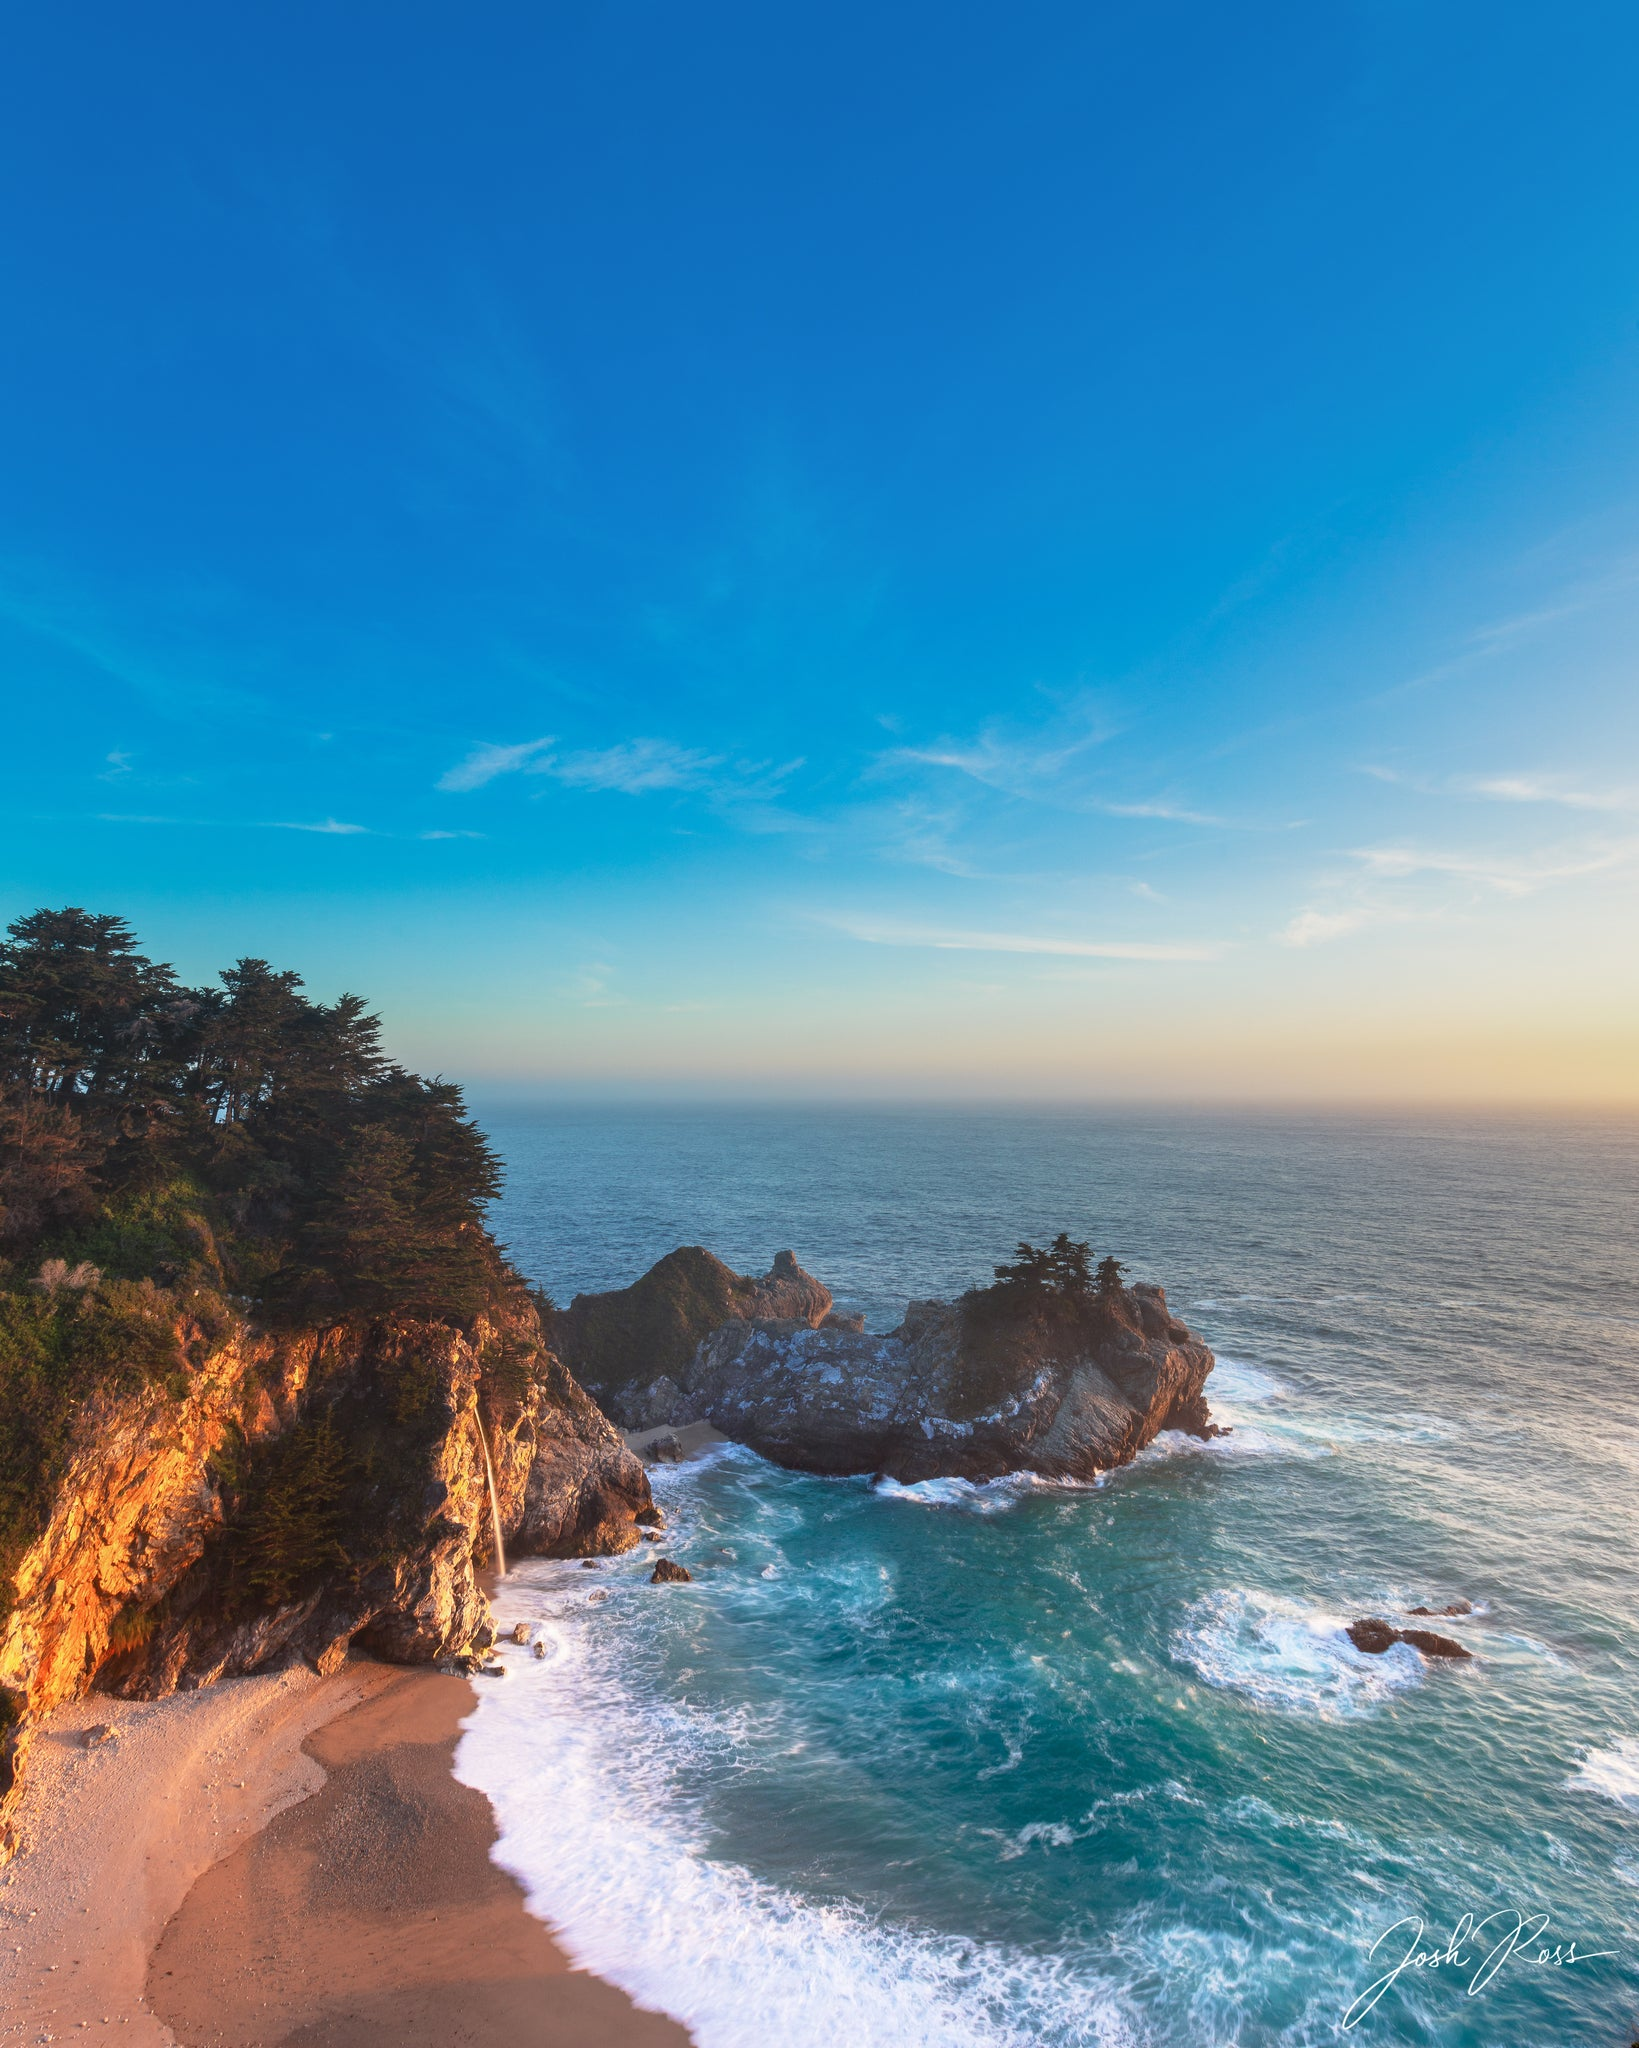 The Jewel of Big Sur